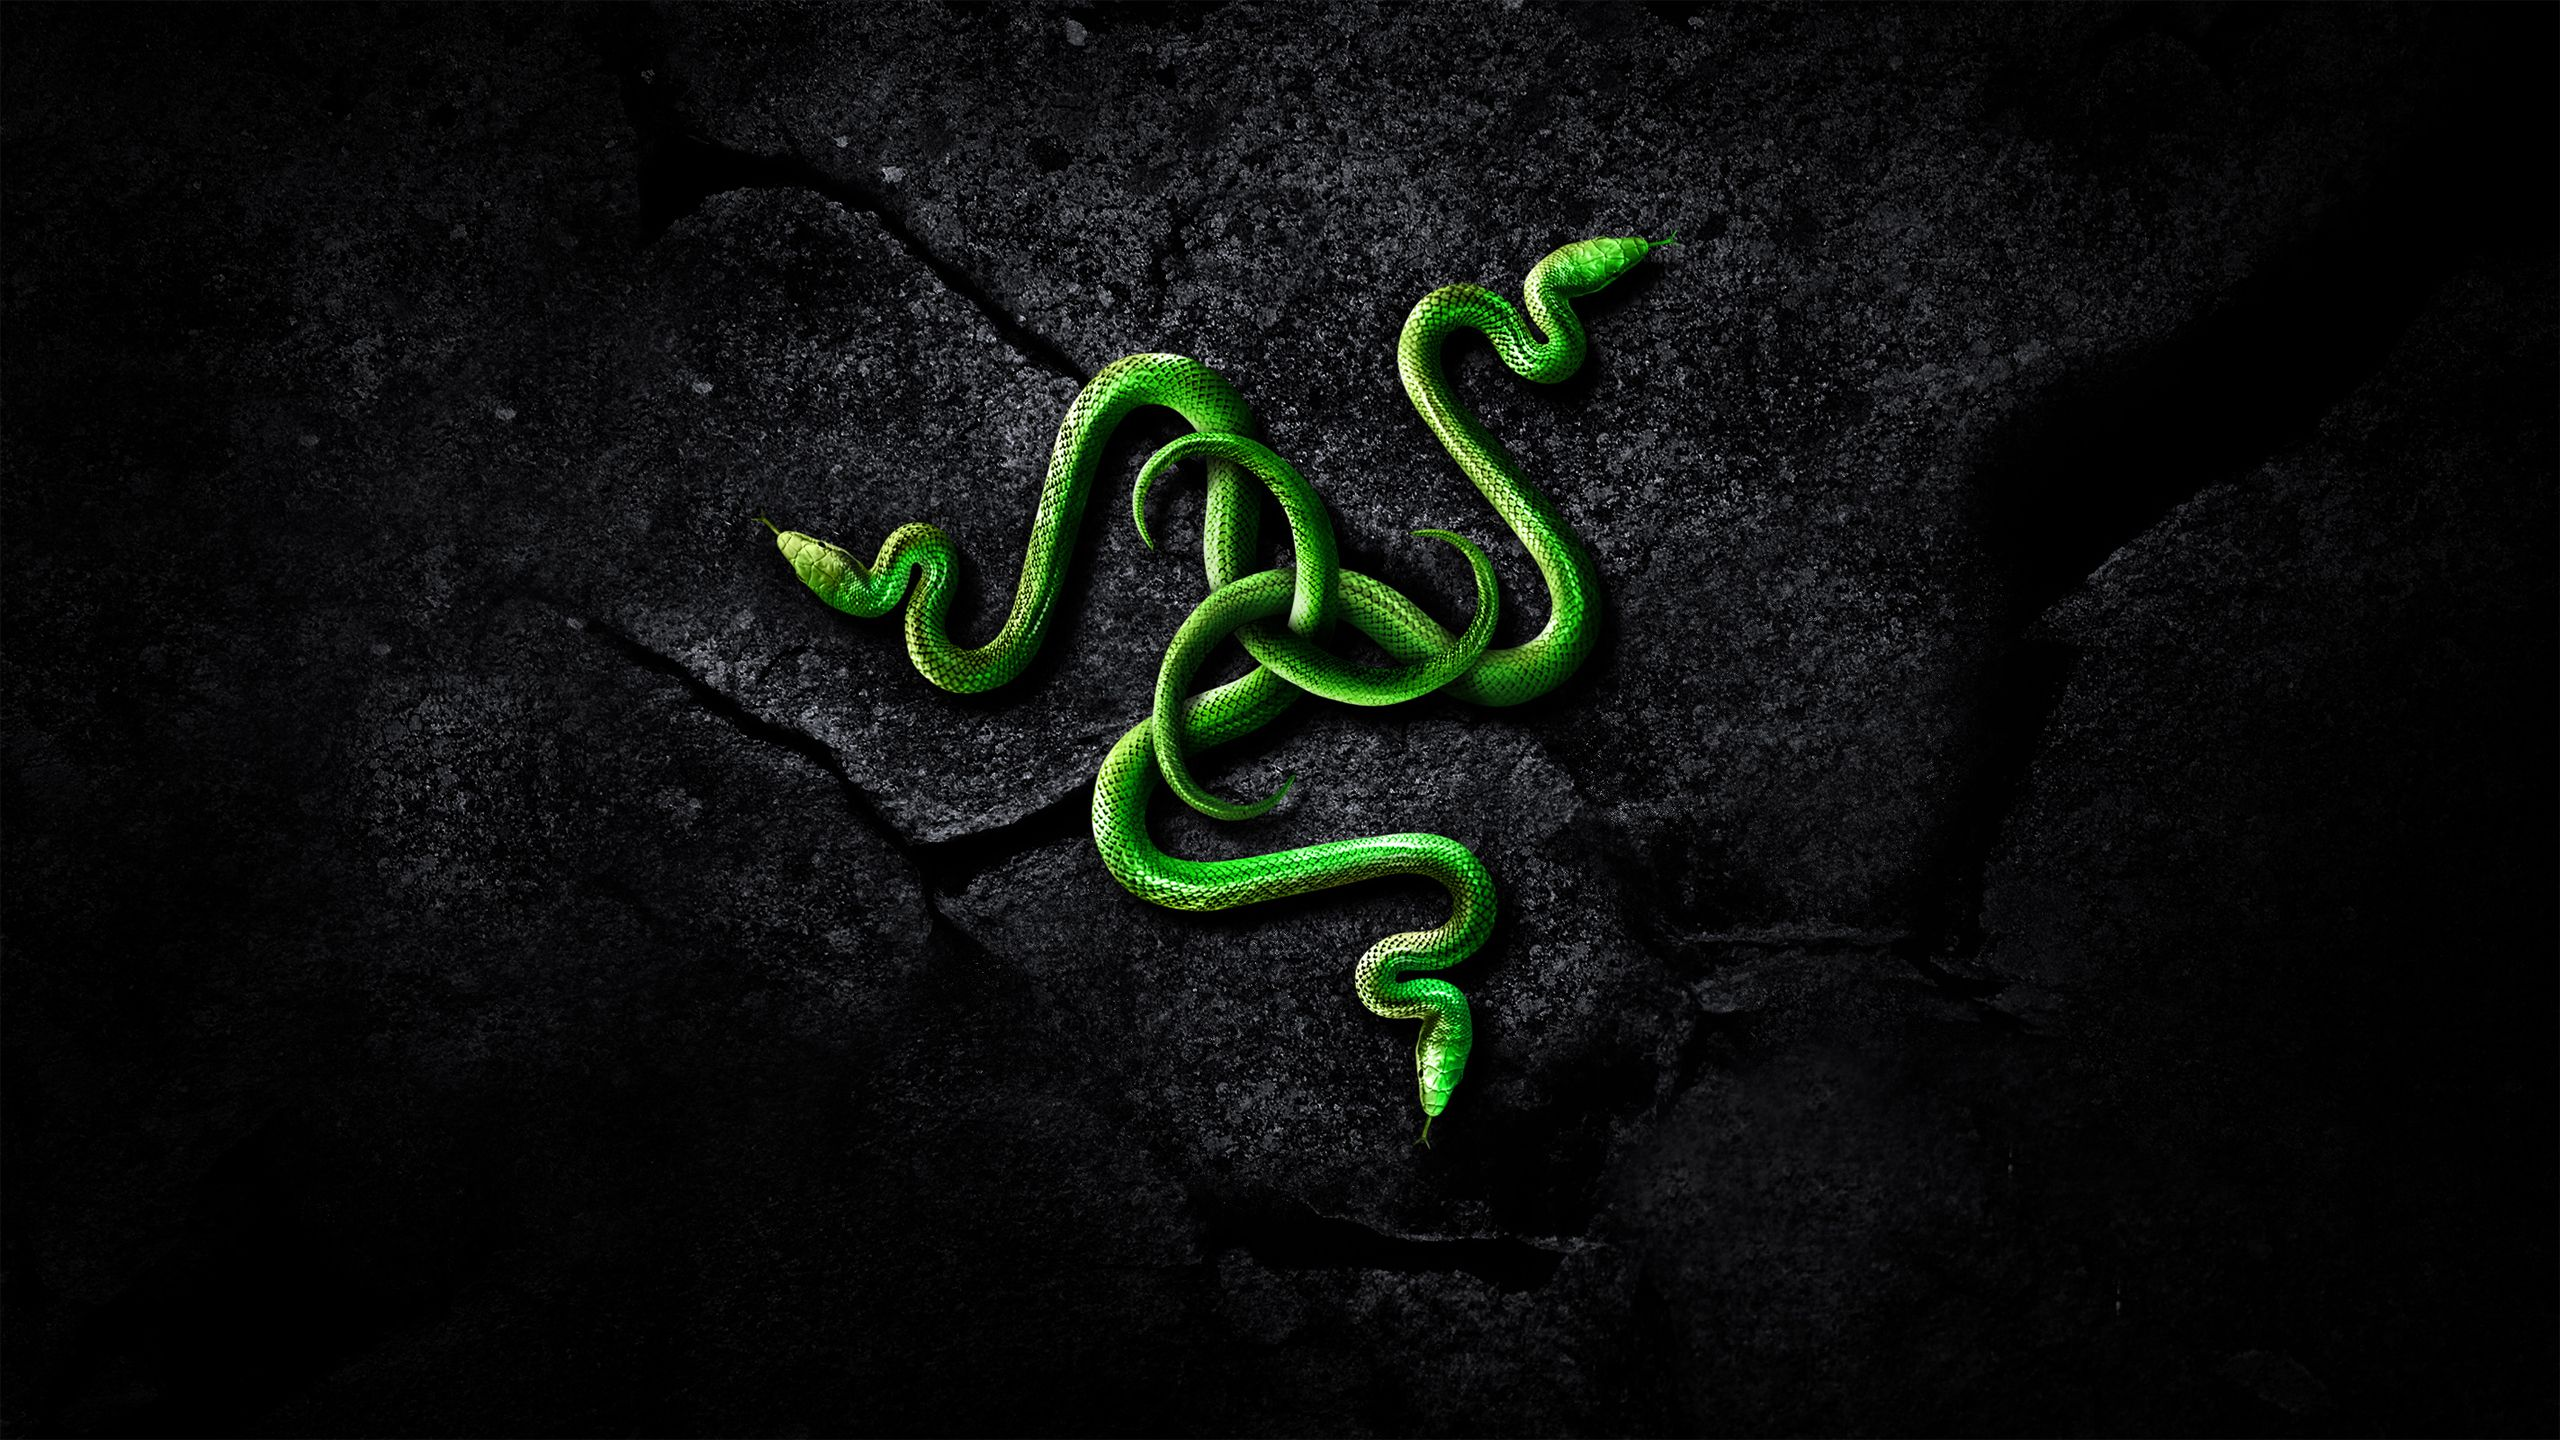 100 Free Hd Phone Wallpapers For All Screen Resolutions 720p 800p 1080p 1440p Hd Phone Wallpapers Razer Phone Wallpaper